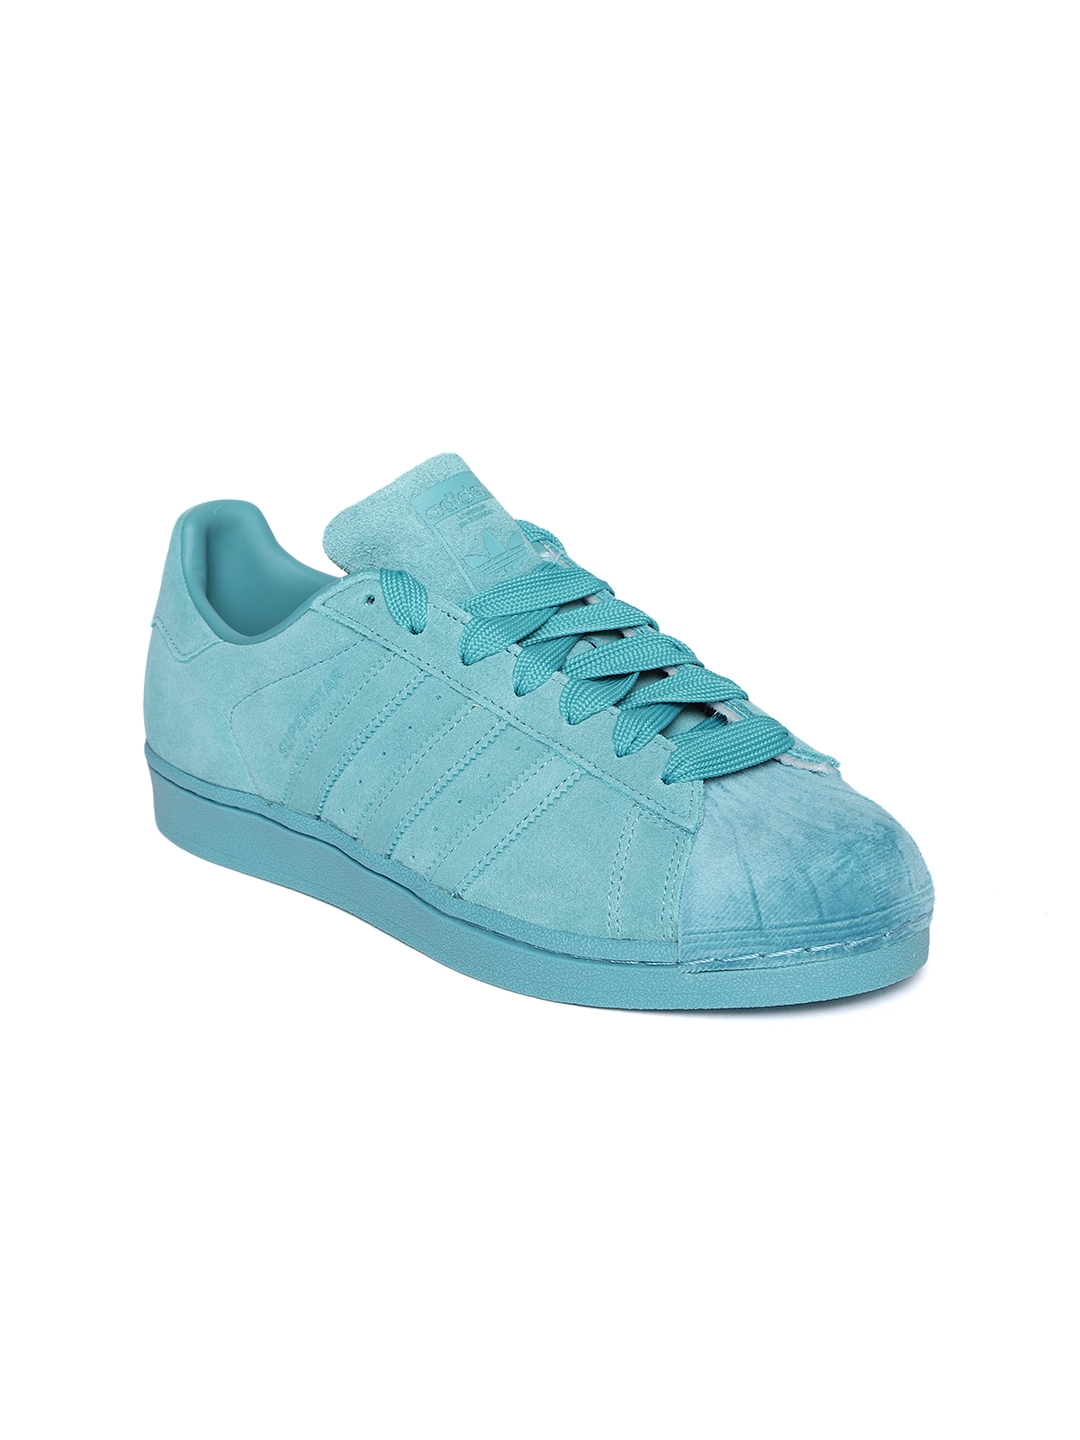 Sur oeste Conciliador mercado  Buy ADIDAS Originals Women Blue Superstar Leather Sneakers - Casual Shoes  for Women 8616553 | Myntra